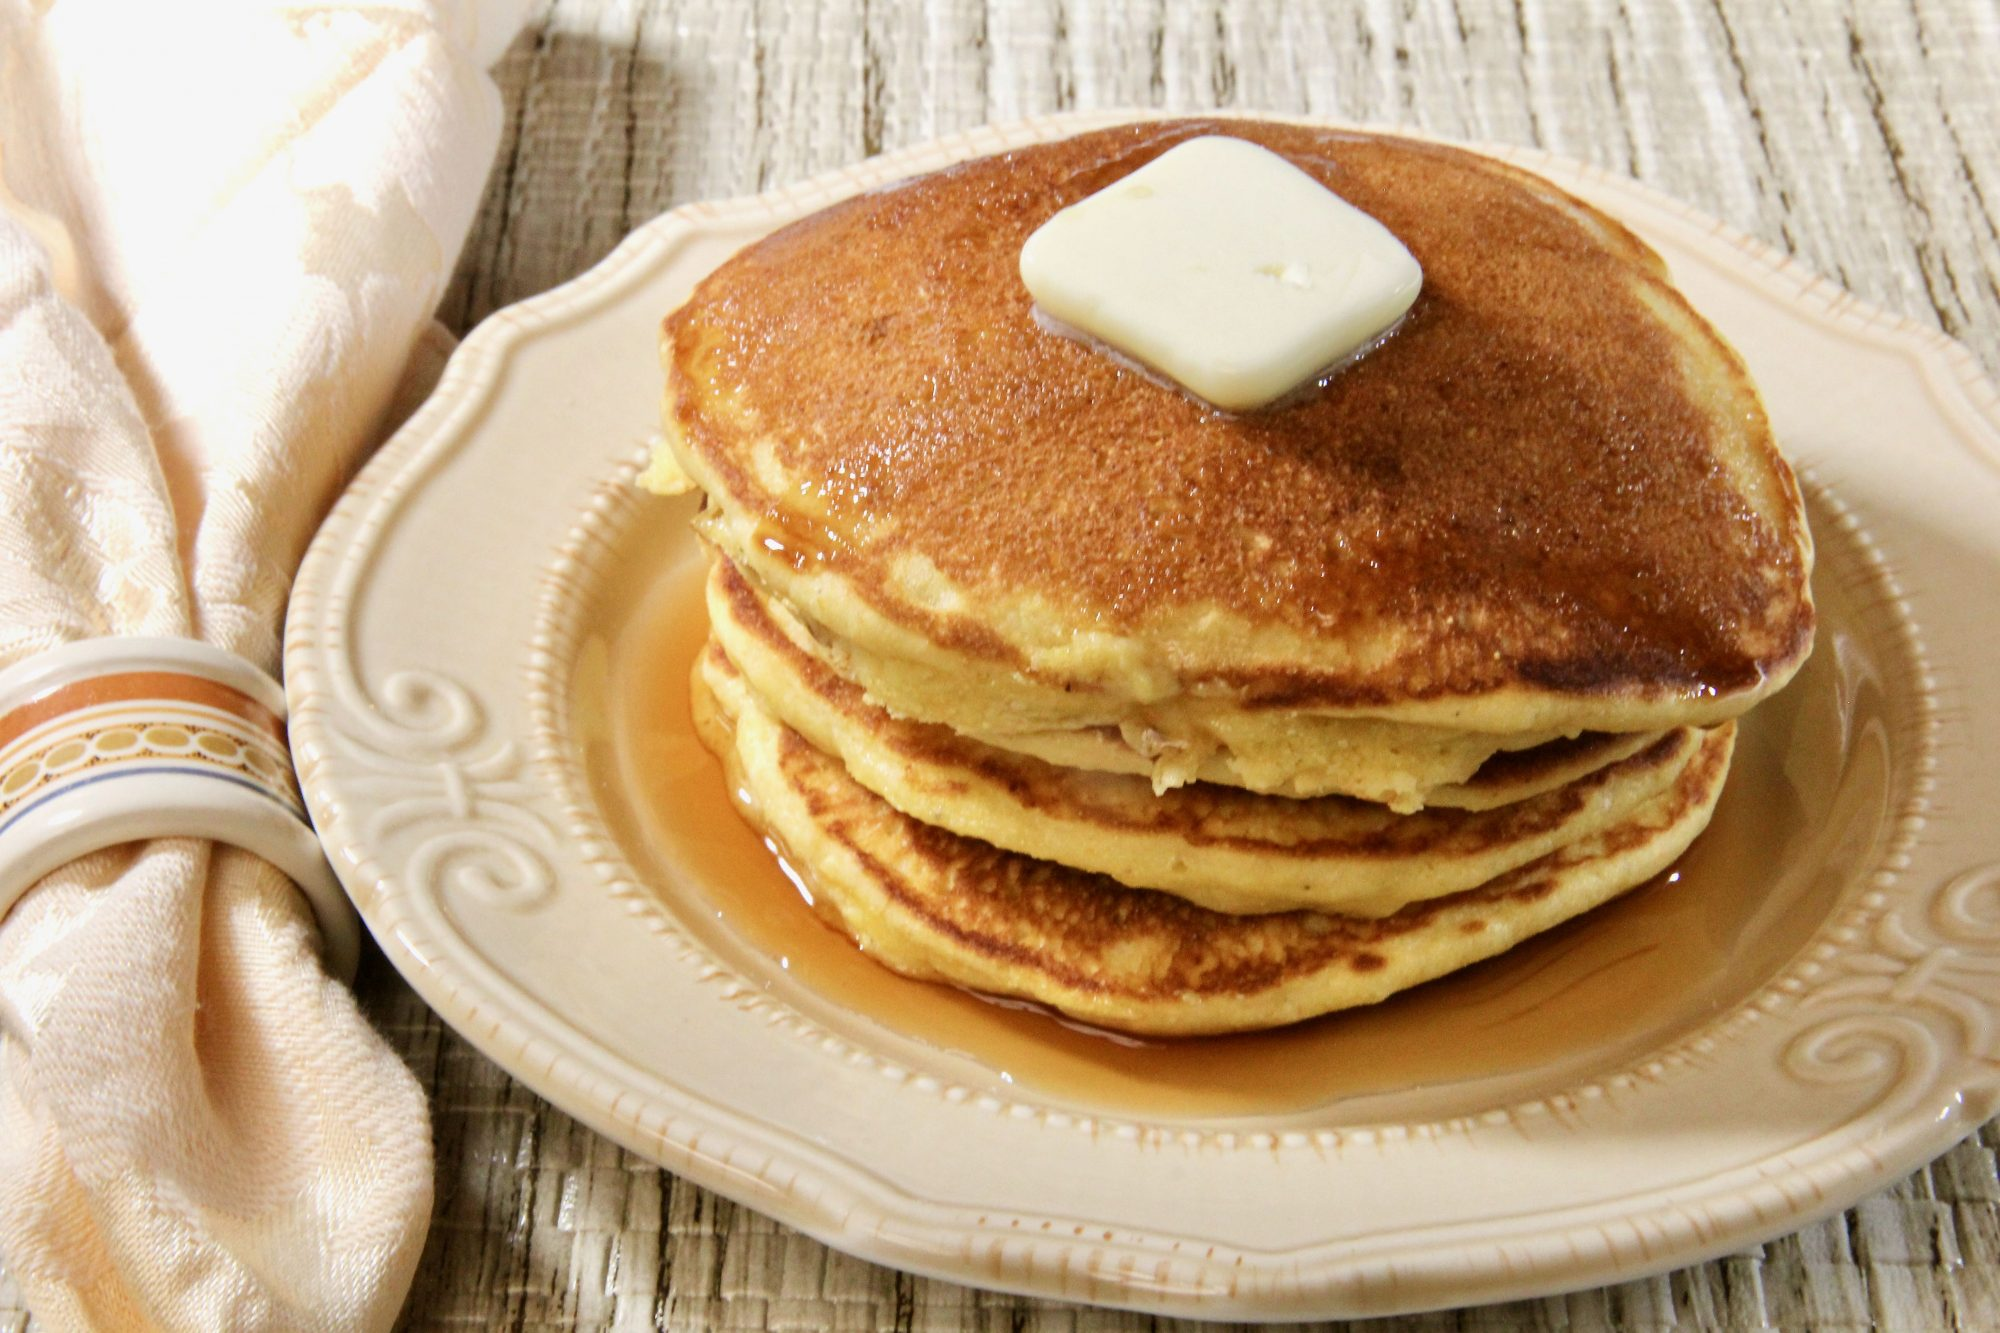 stack of pancakes on ceramic plate with butter